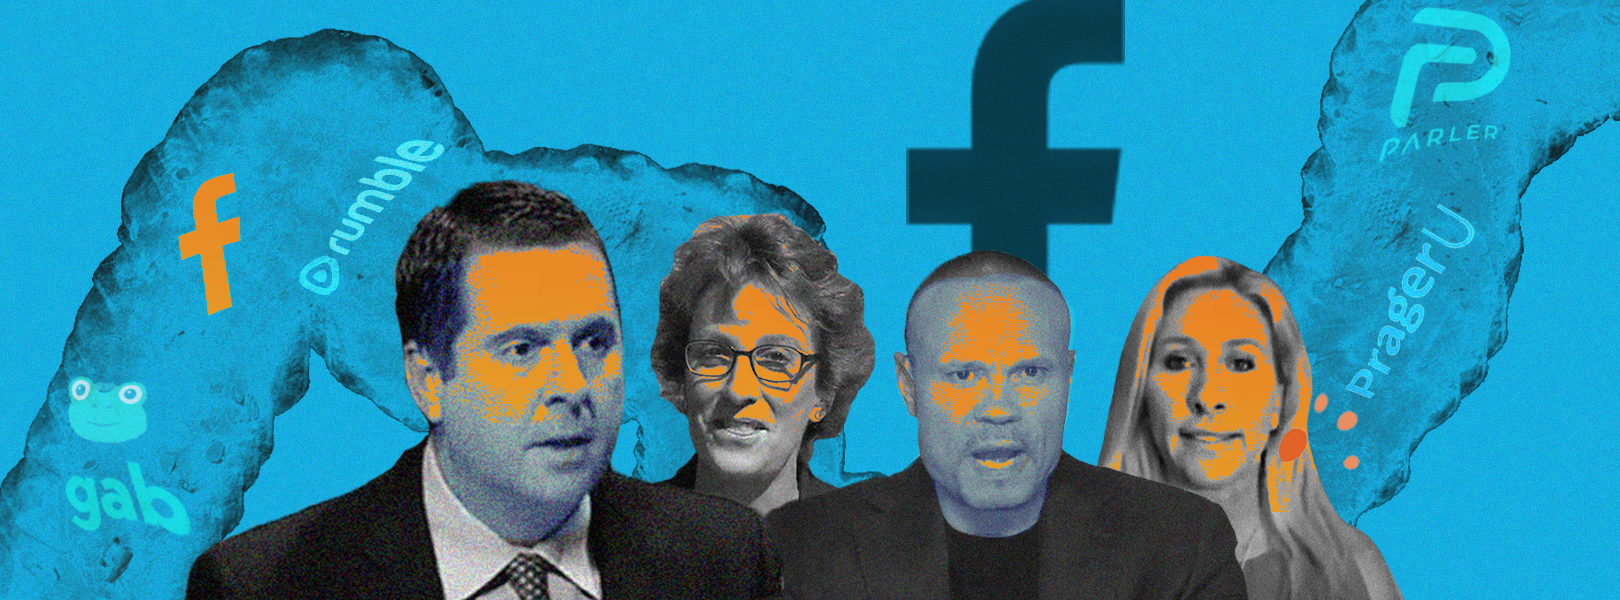 Marjorie Taylor Greene, Dan Bongino, Wendy Rogers, and Devin Nunes over a blue background showing the names of fringe social platforms